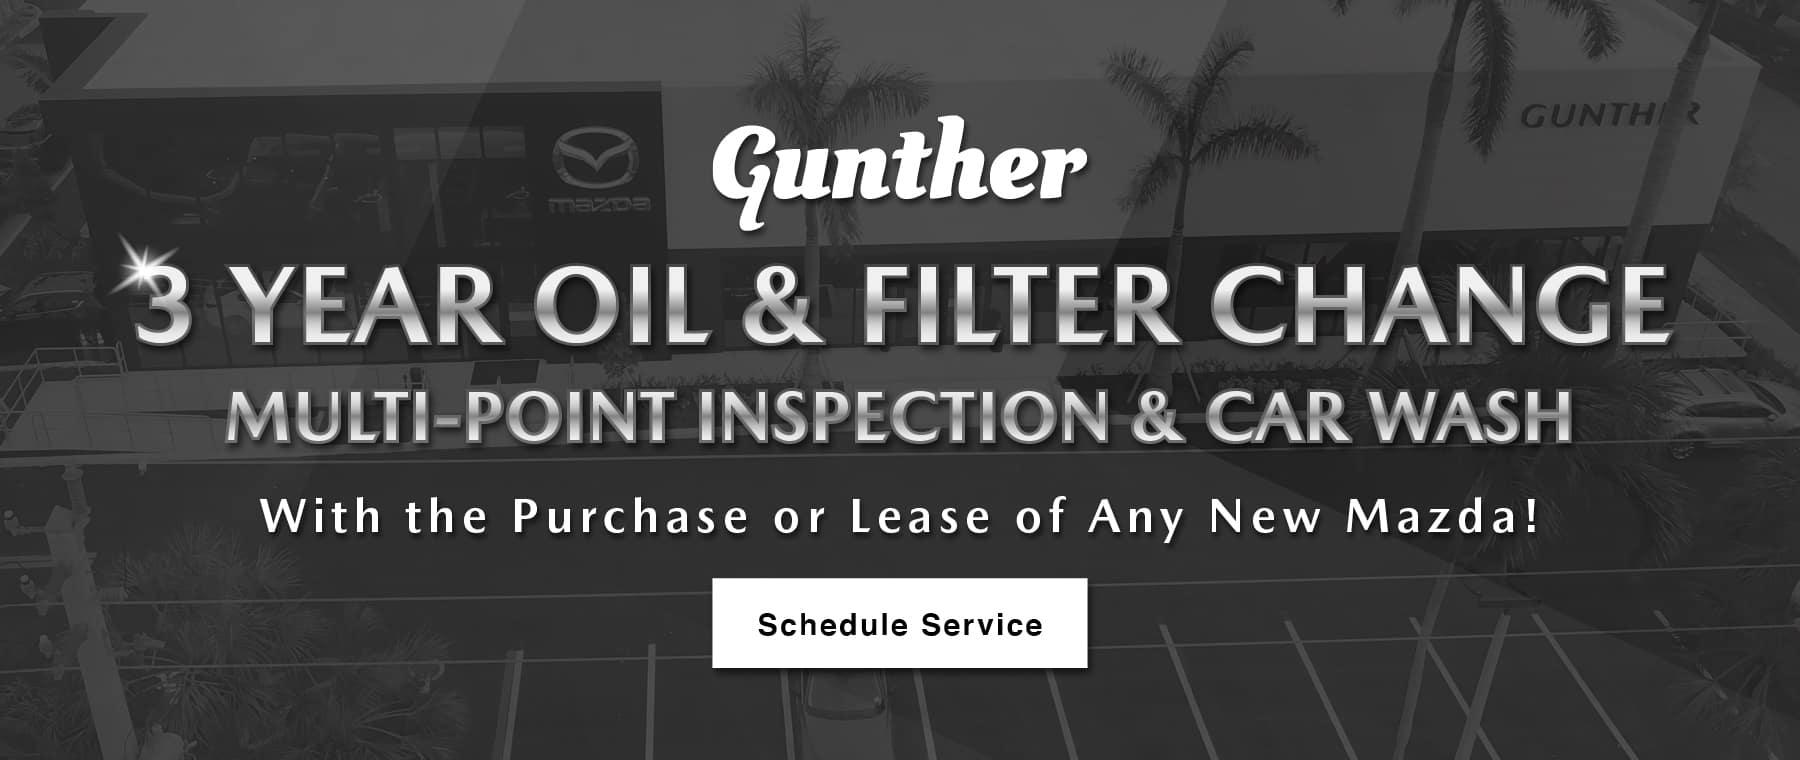 3-Year oil & filter change, multi-point inspection & car wash with the purchase or lease of any new Mazda! Click or tap to schedule service.